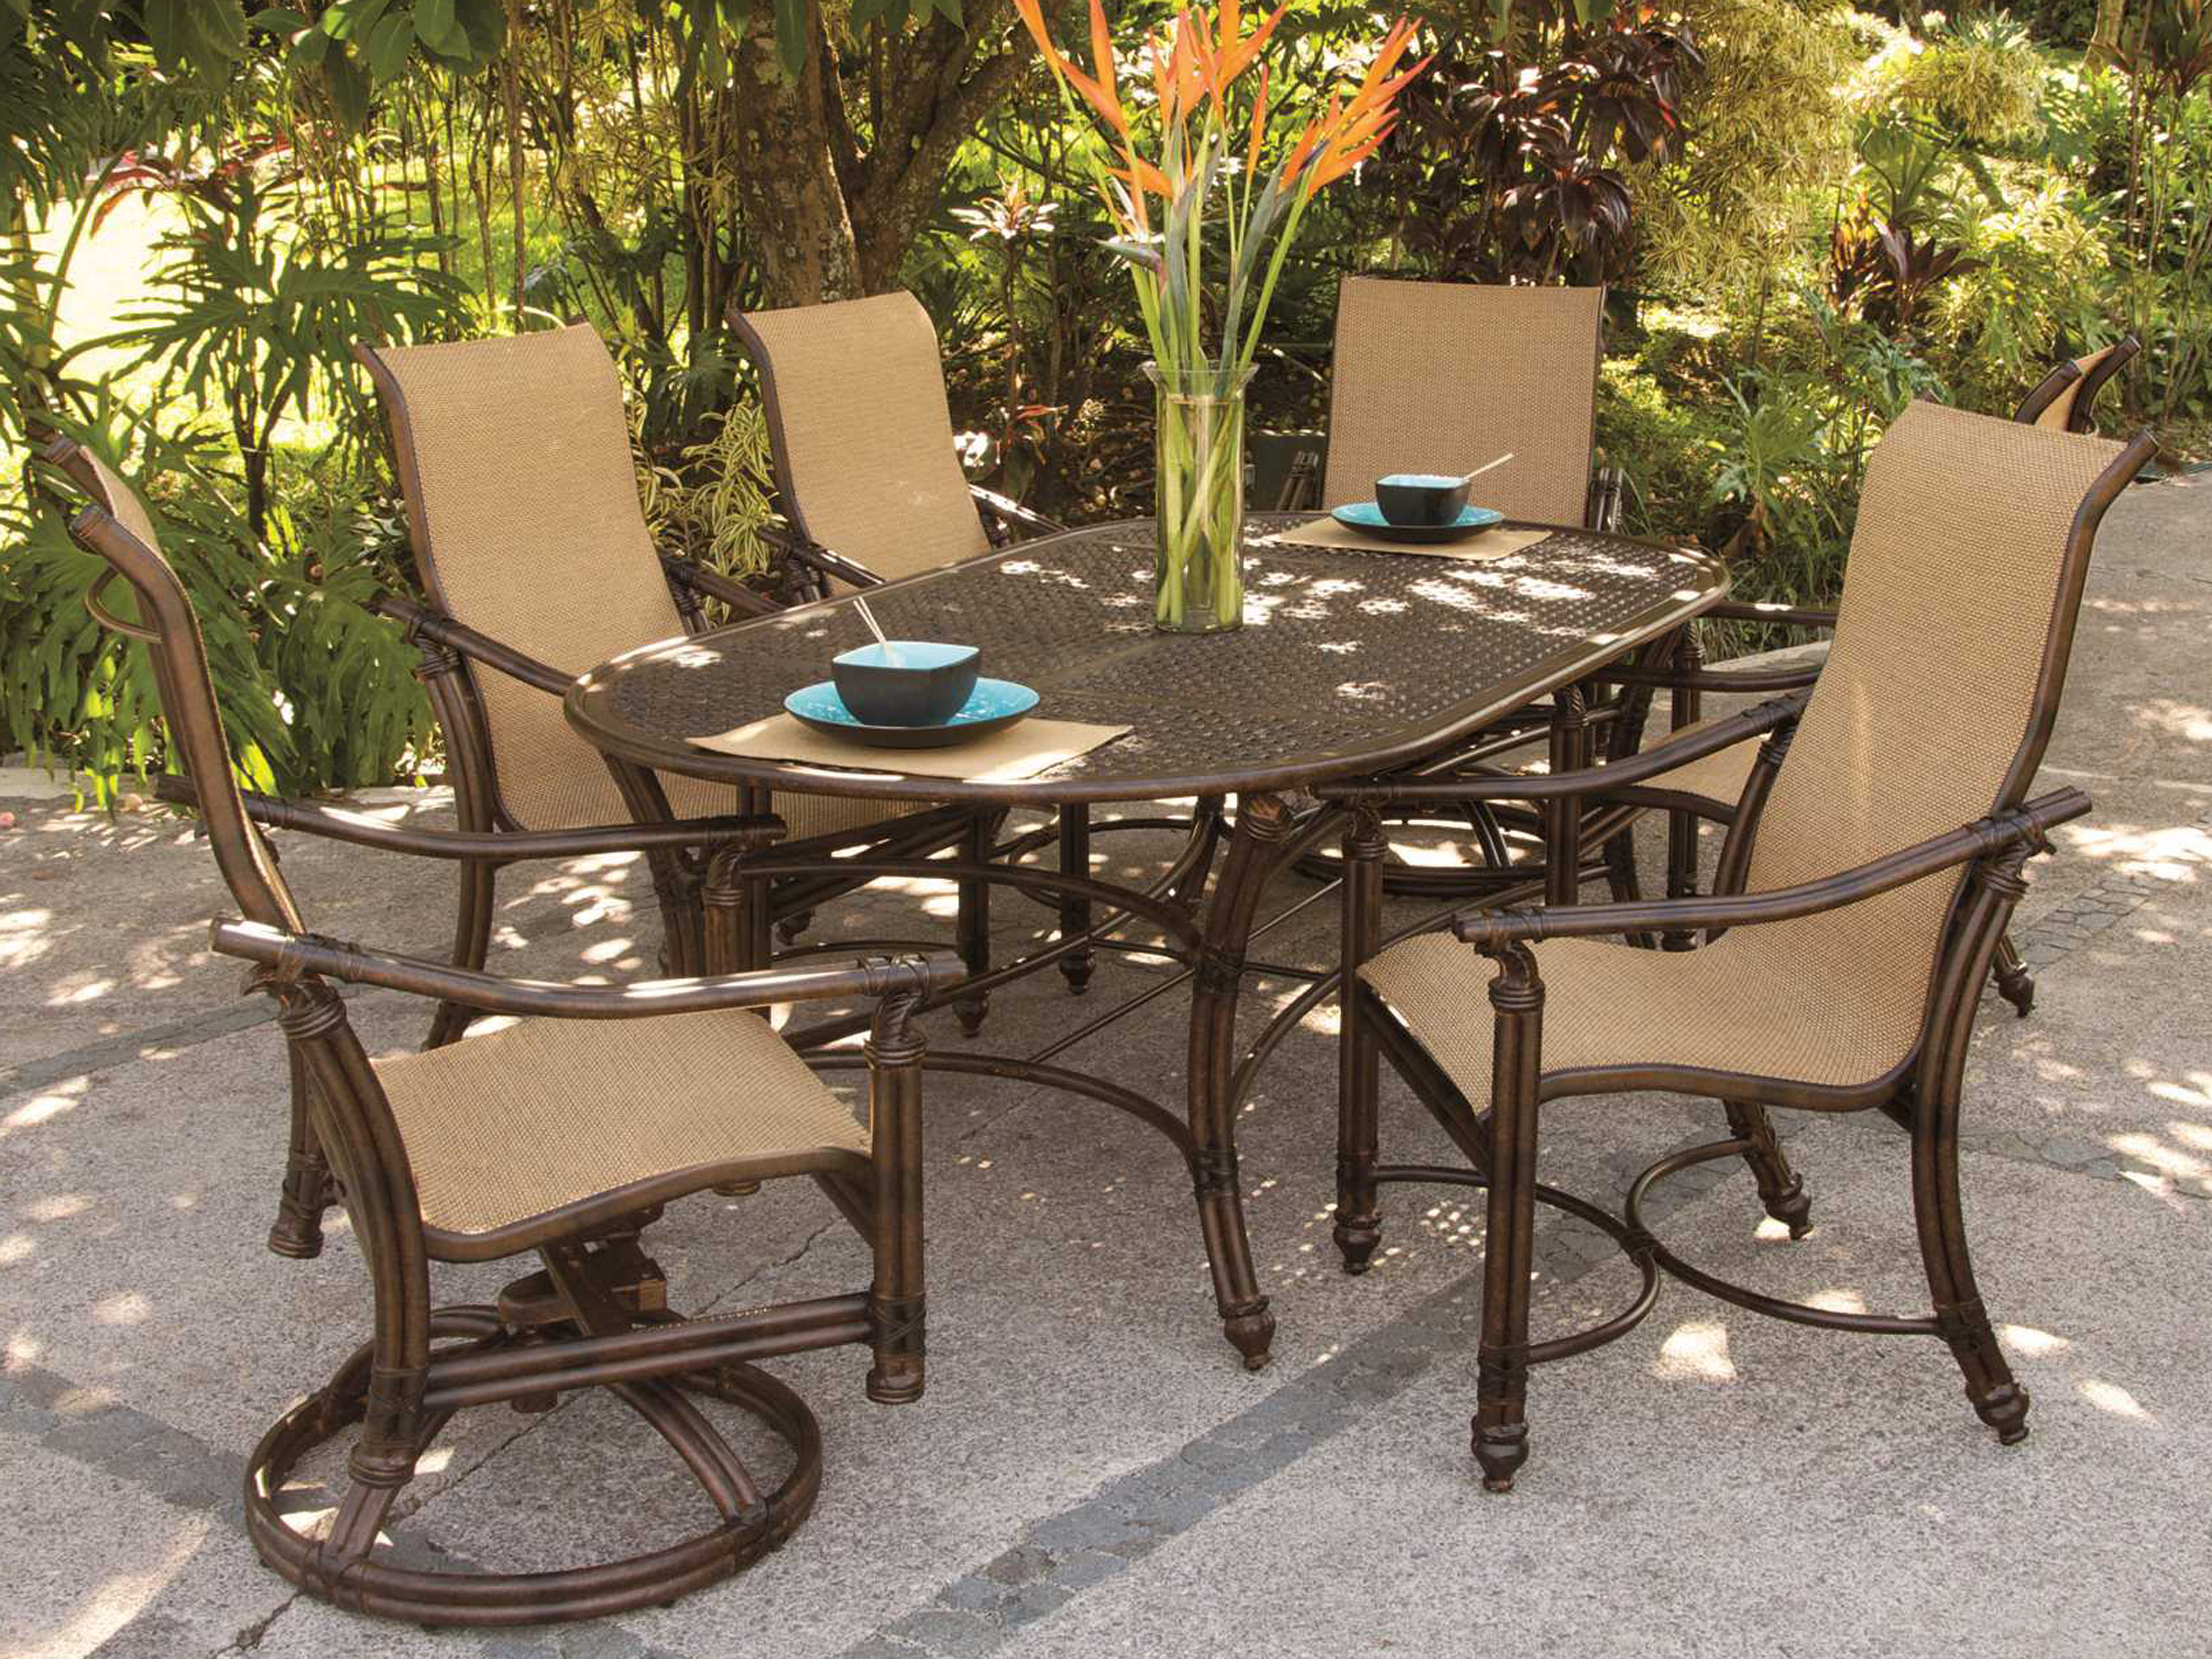 Castelle Coco Isle Sling Cast Aluminum Dining Chair